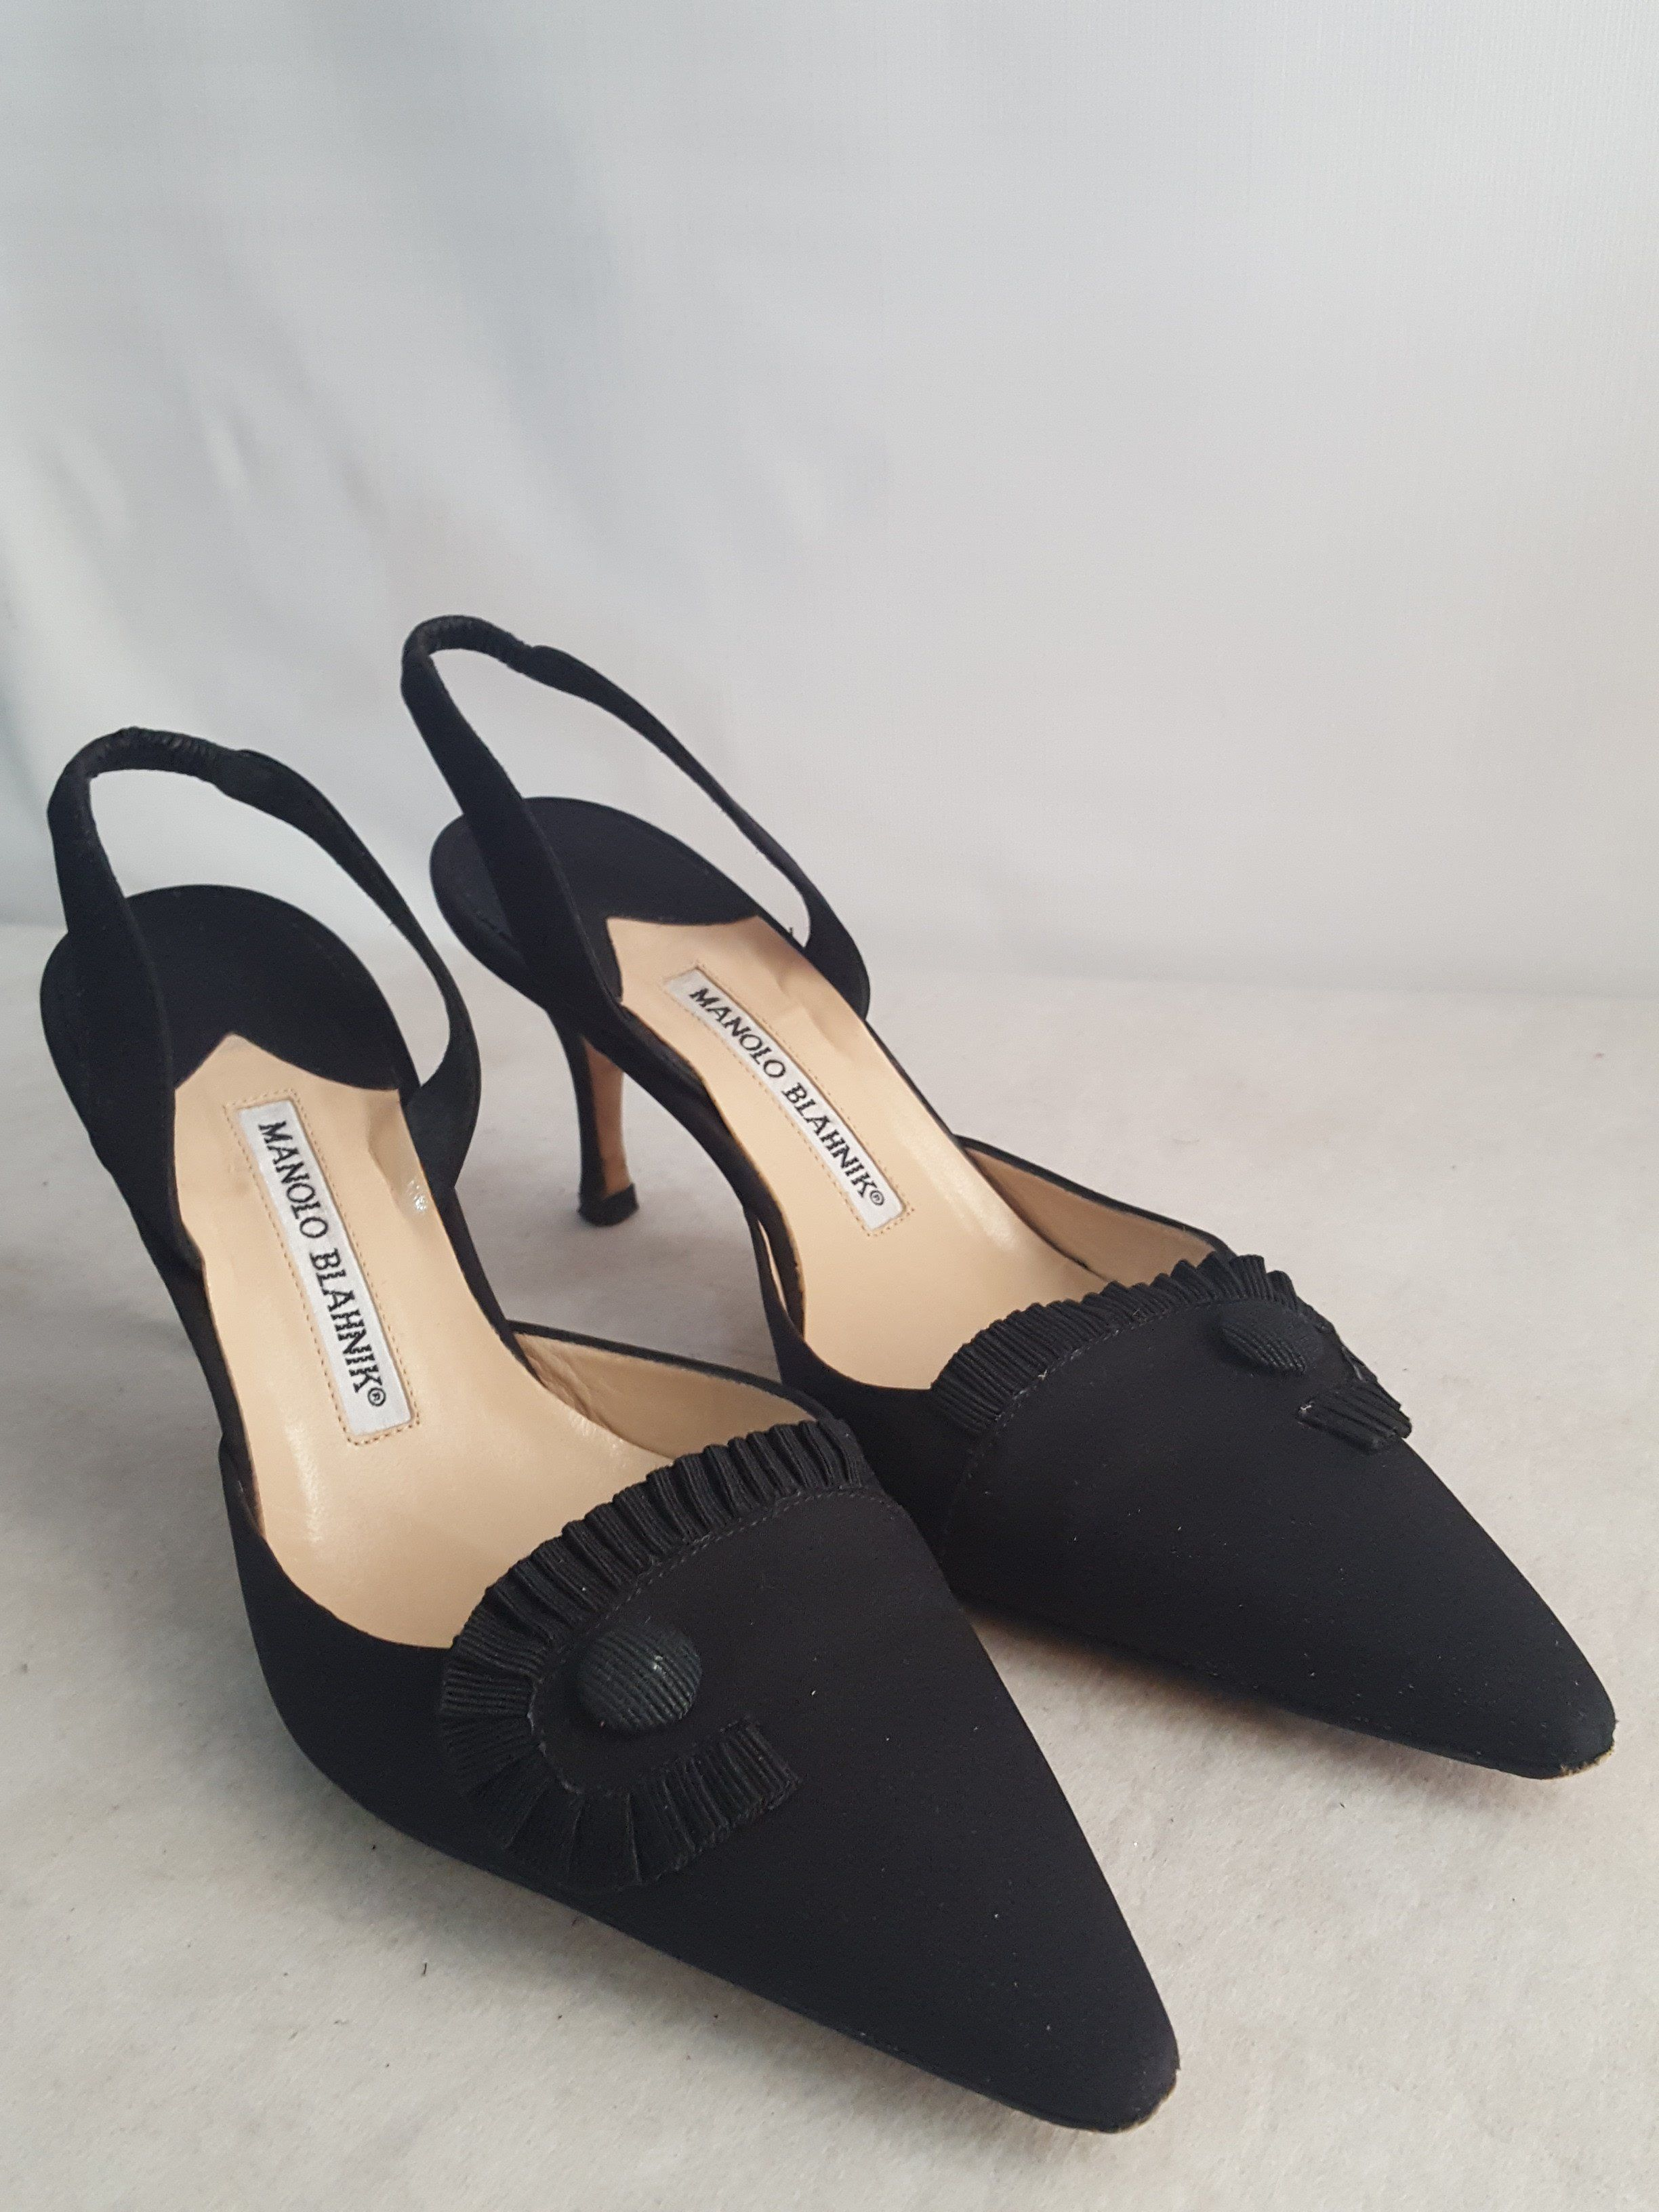 cheap sale exclusive real cheap online Manolo Blahnik Pointed-Toe Slingback Pumps new styles sale online shopping online cheap online discount explore AOqXSHi